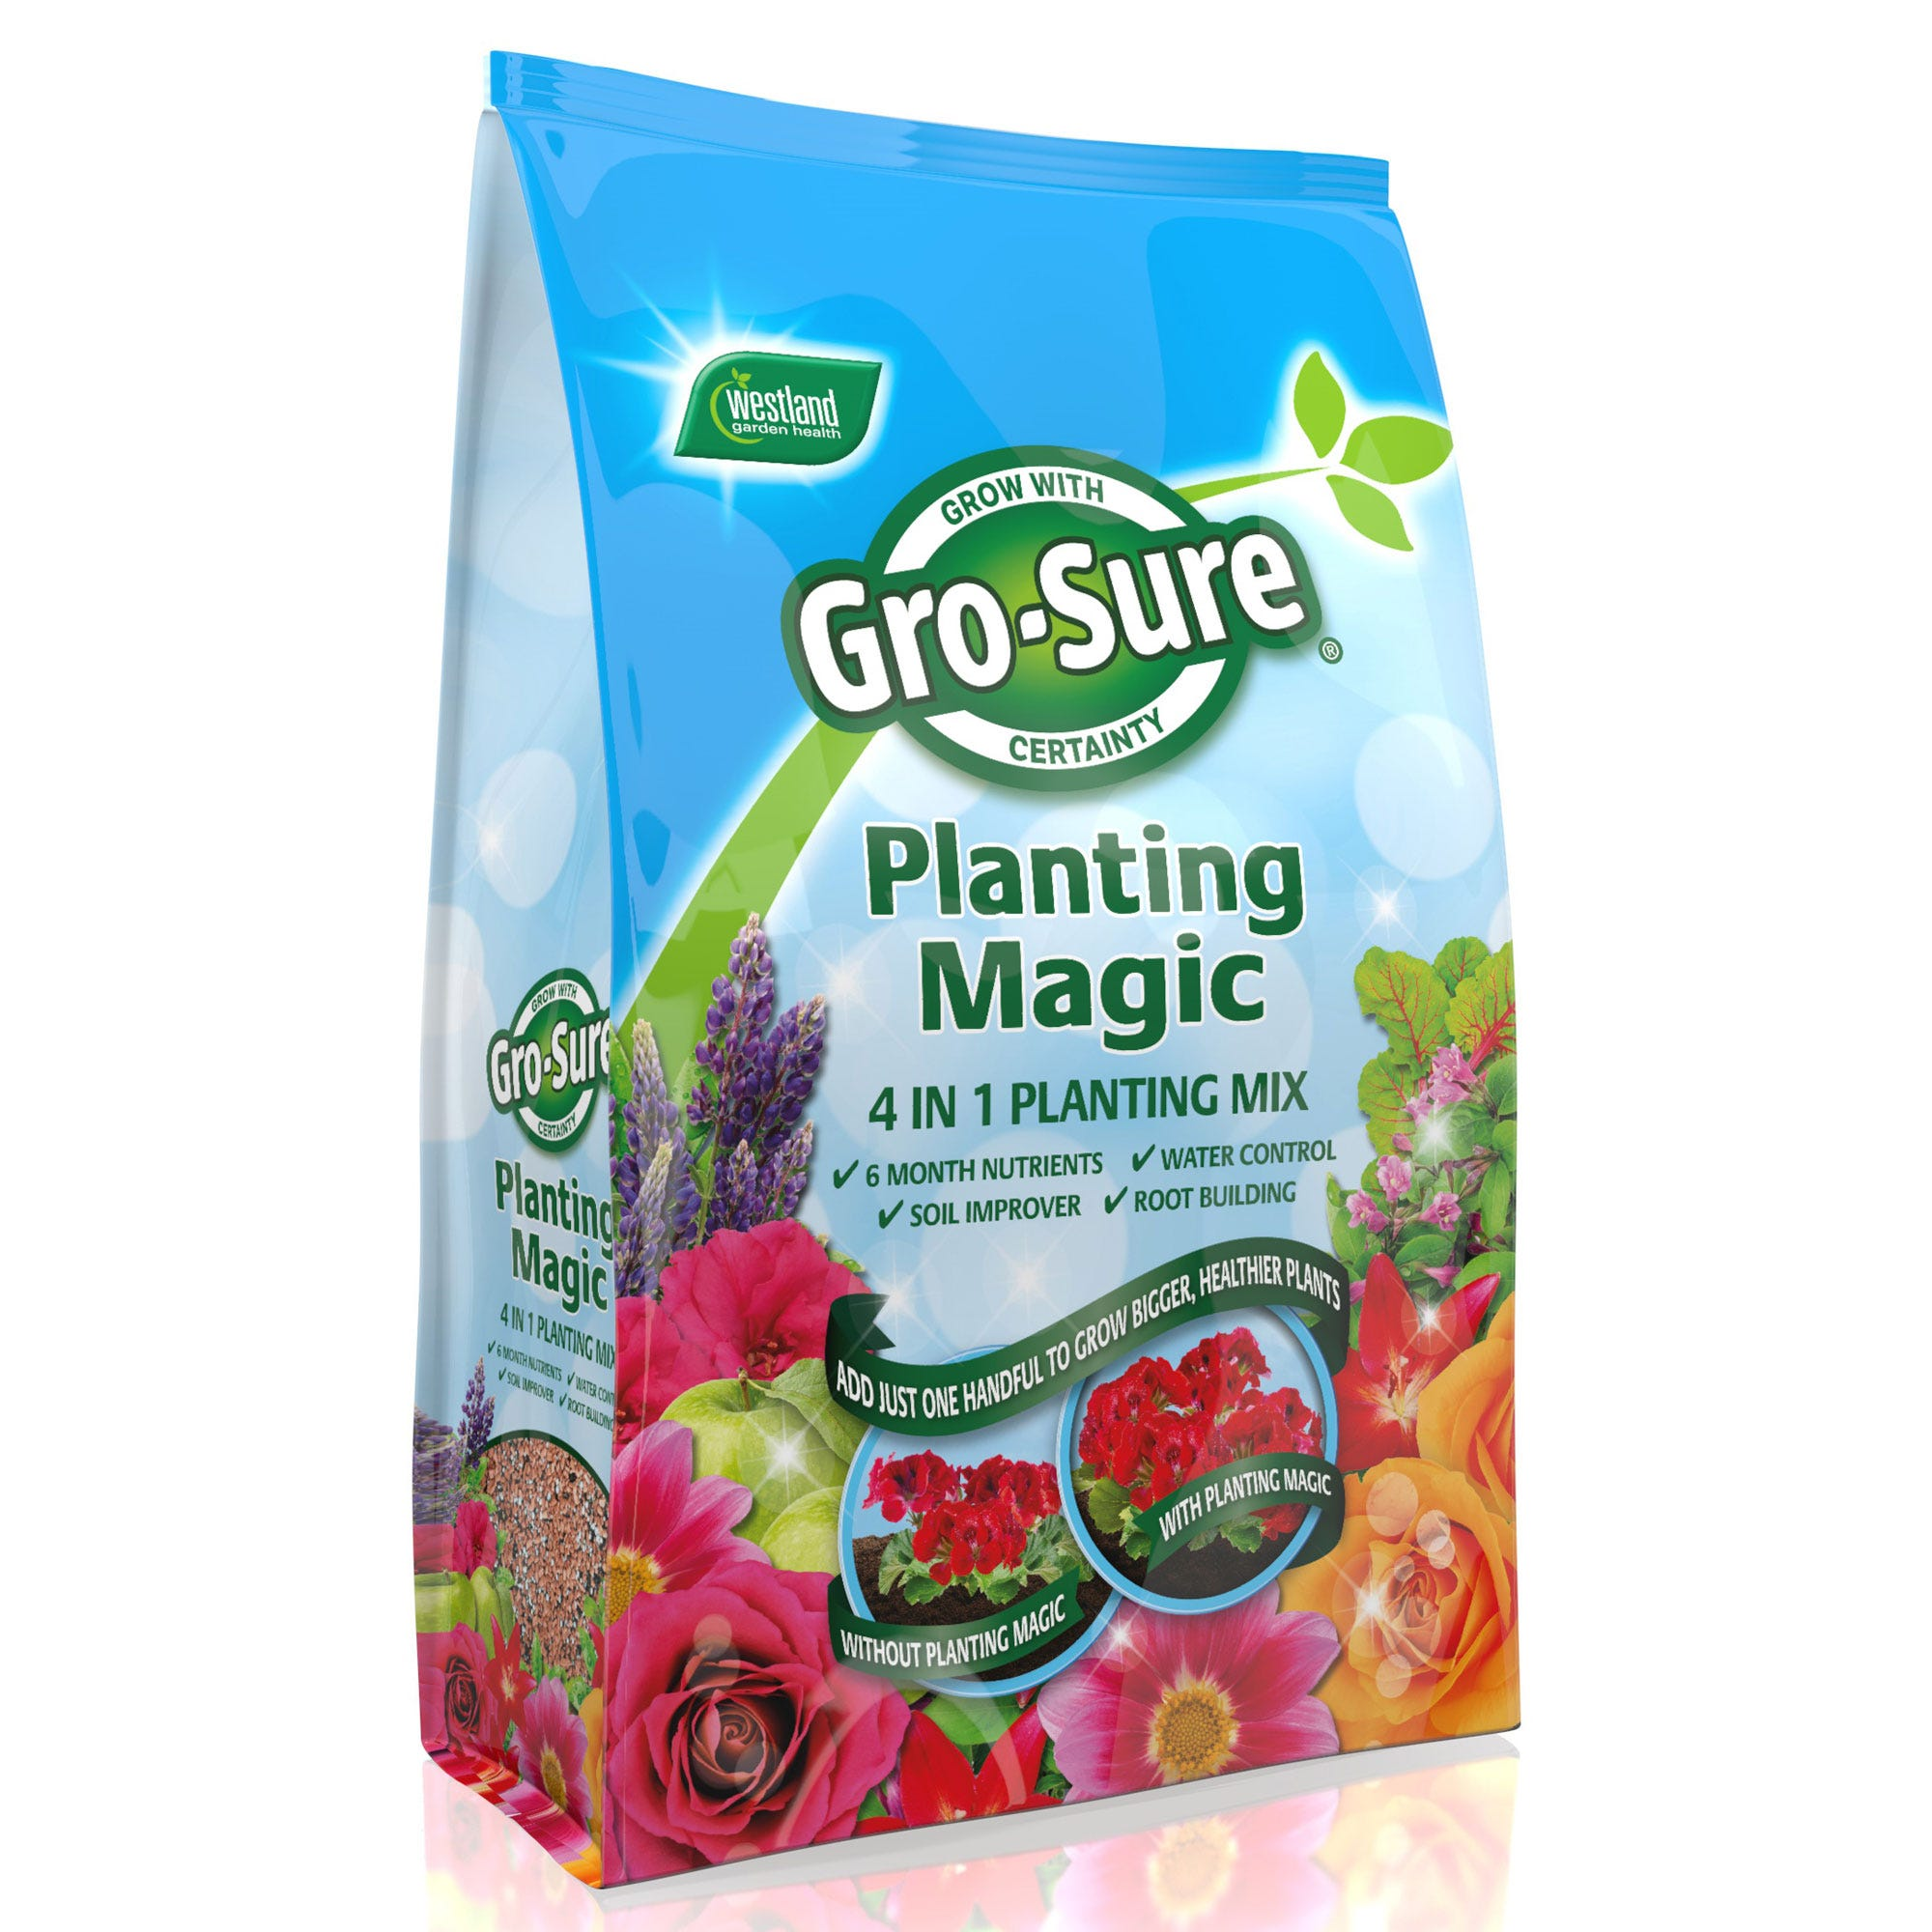 Image of Gro-Sure Planting Magic 4 in 1 Planting Mix